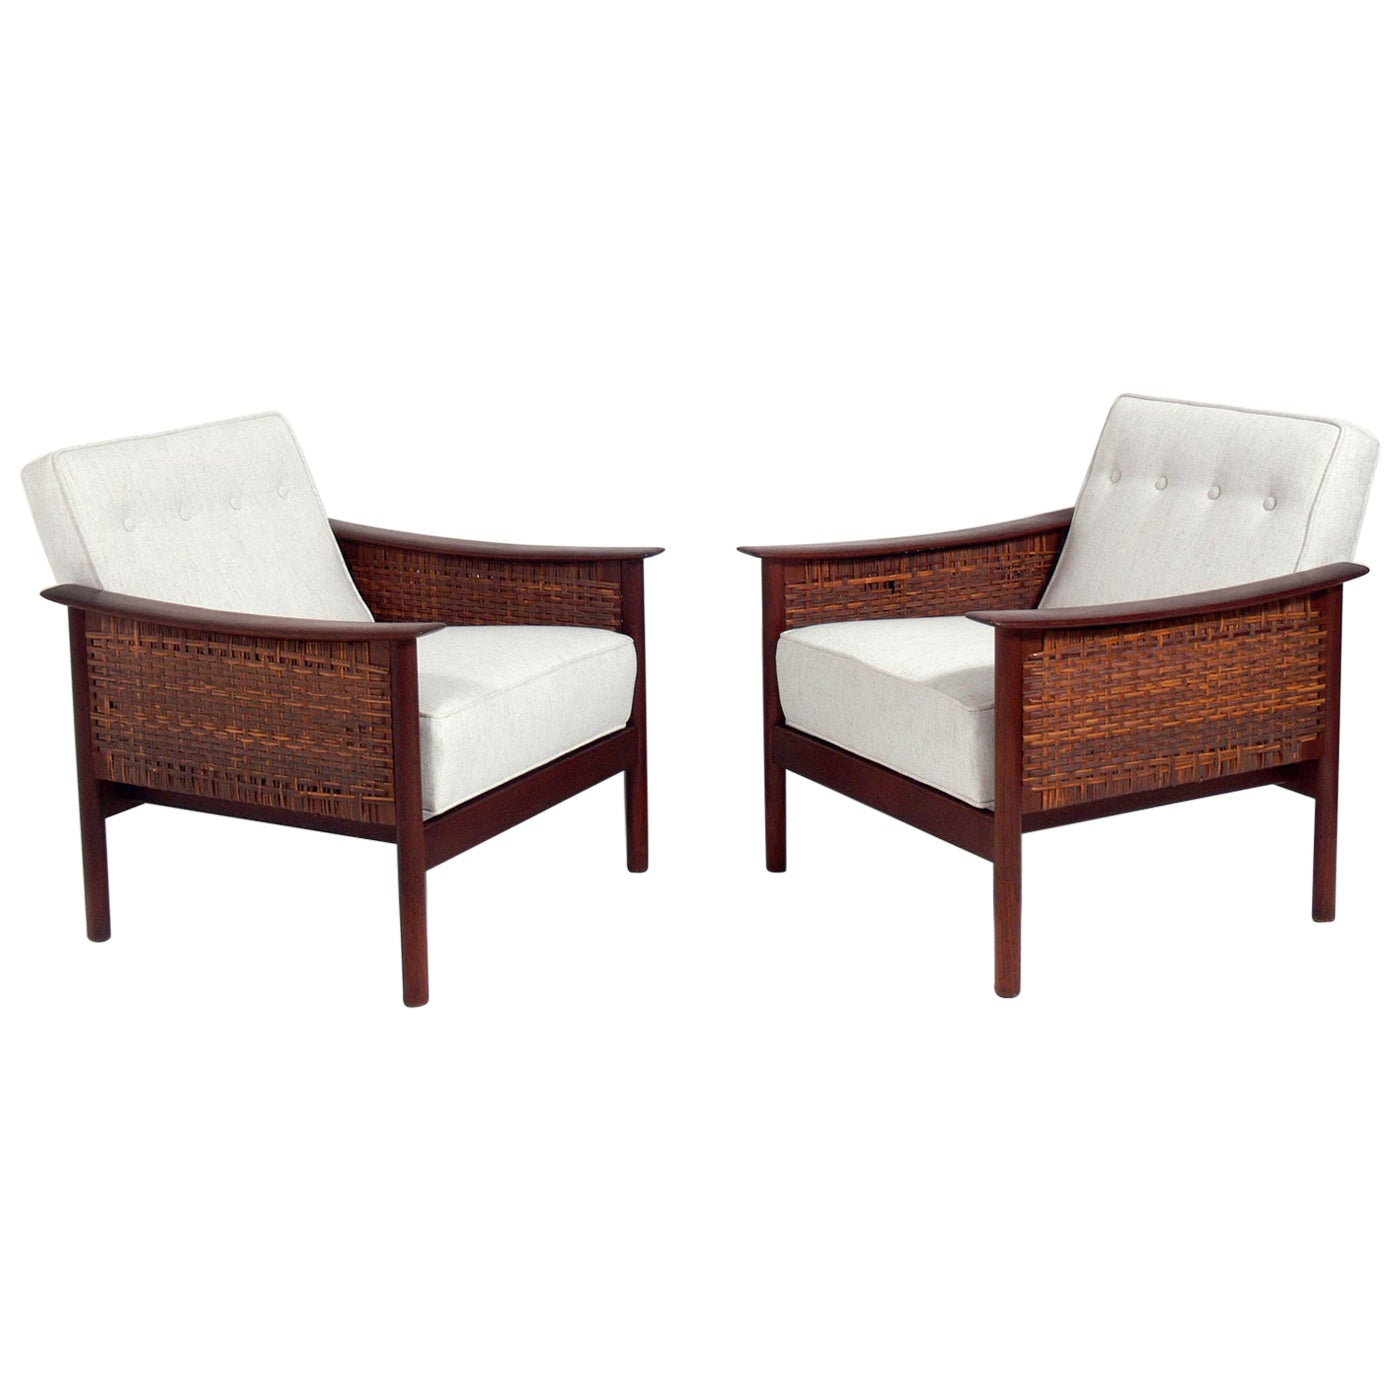 Pair of Danish Modern Caned Lounge Chairs